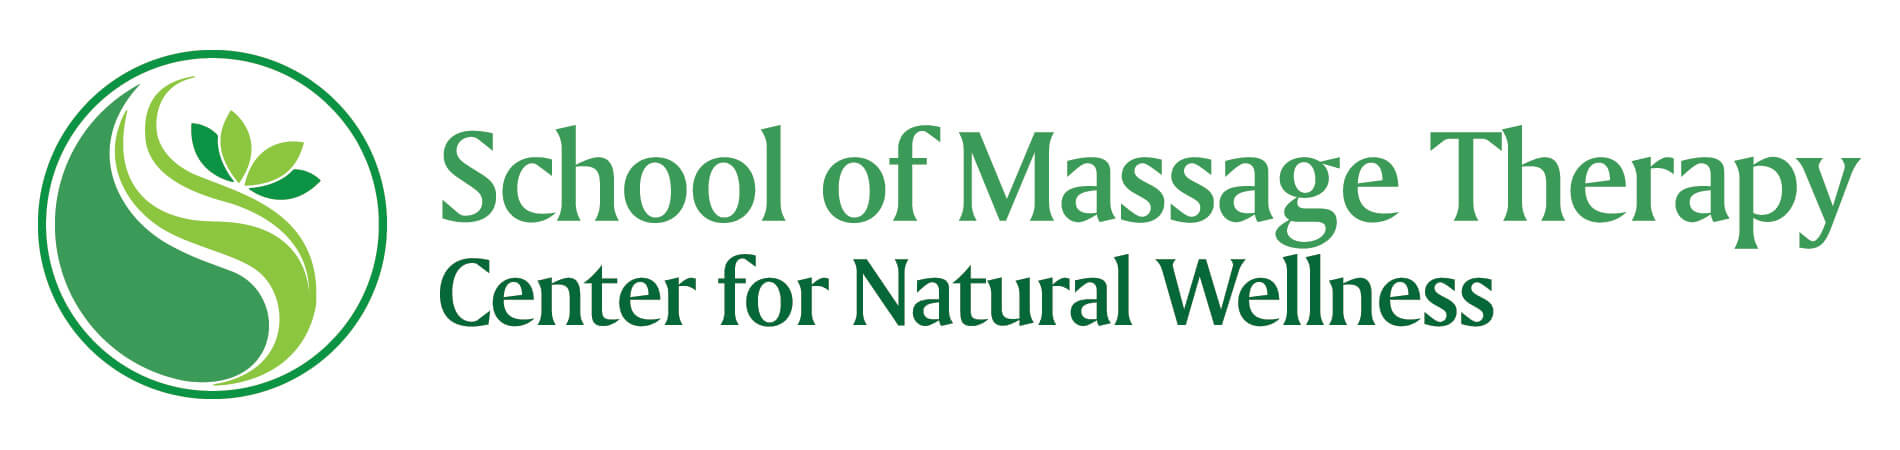 center-for-natural-wellness-school-of-massage-therapy-logo.jpg